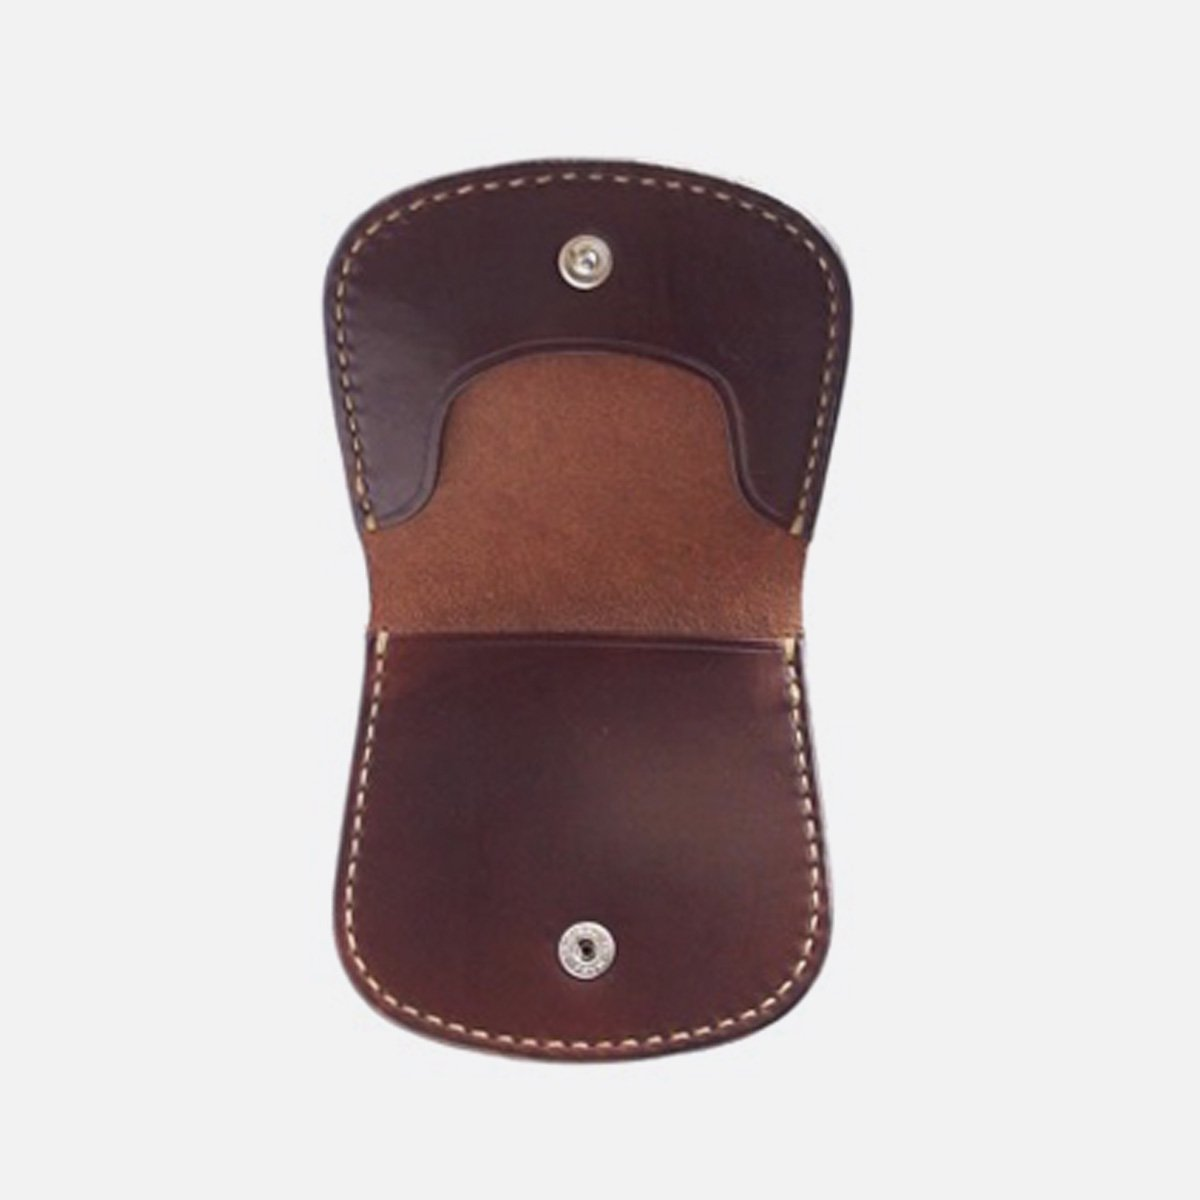 MOTO LEATHER COINCASE C1D (BROWN)3